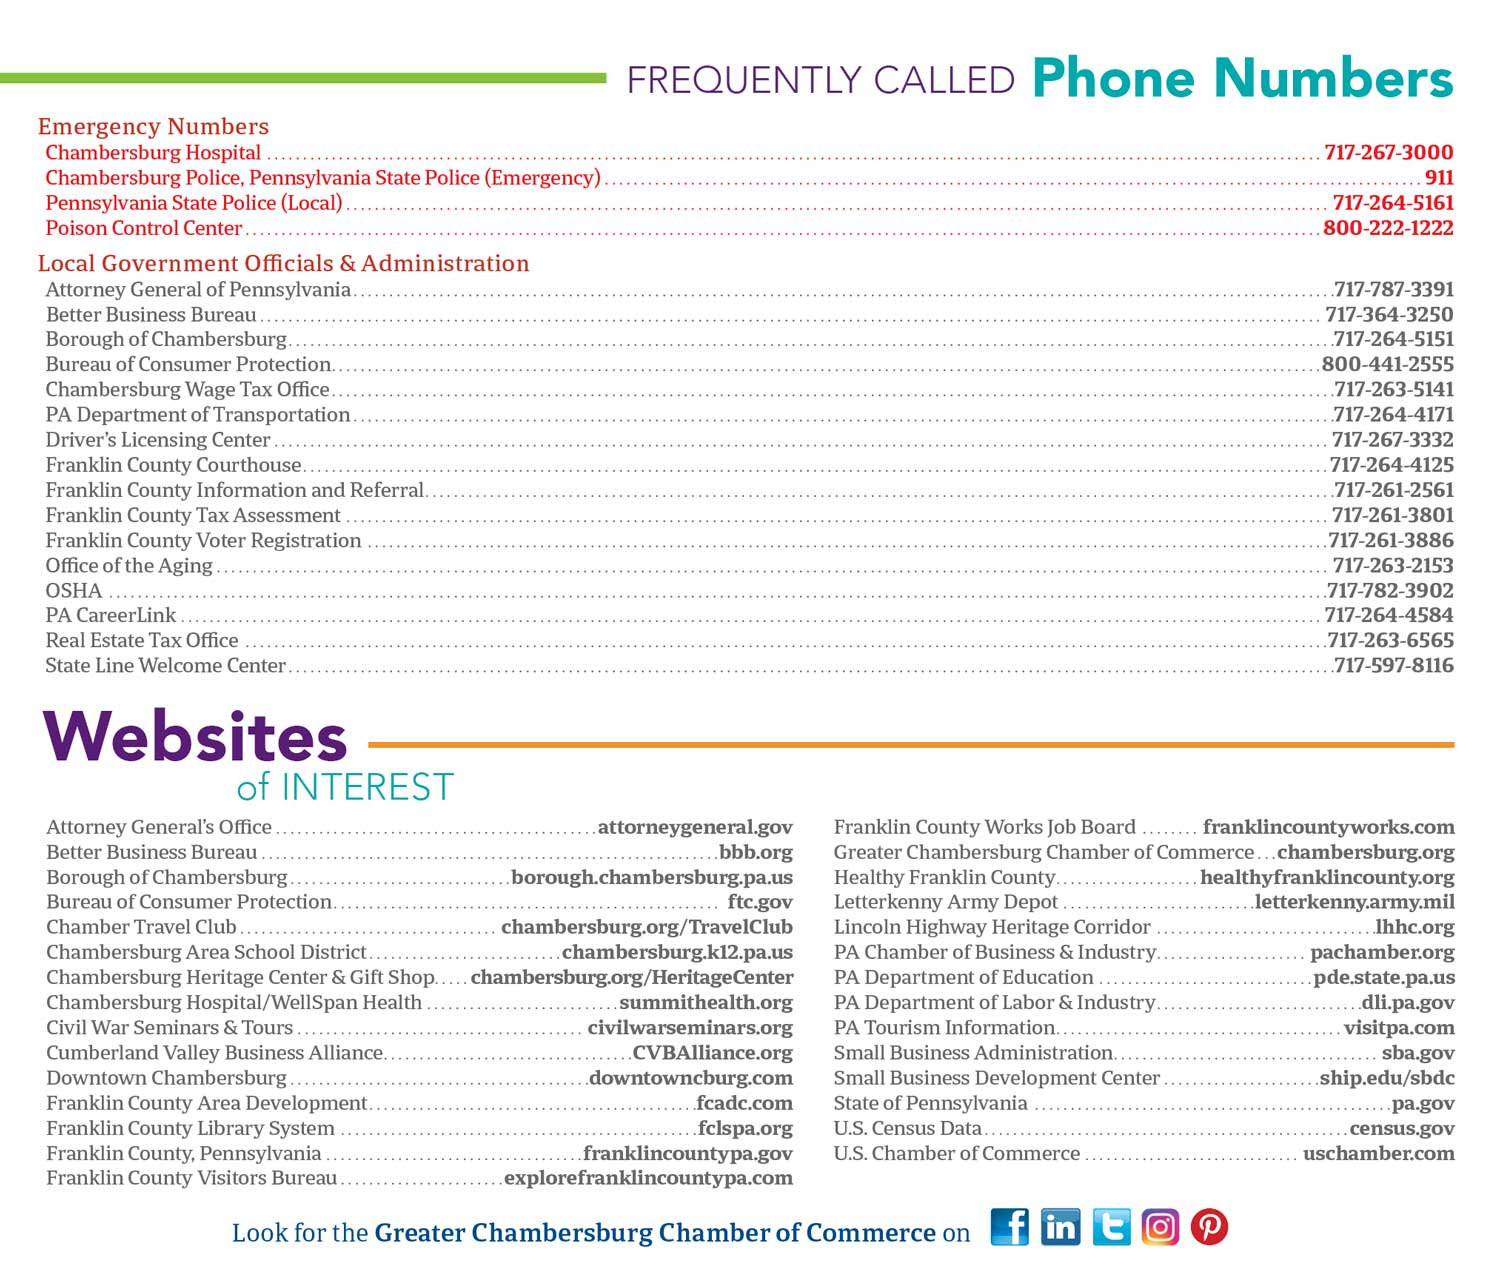 Frequently Called Phone Numbers & Websites of Interest